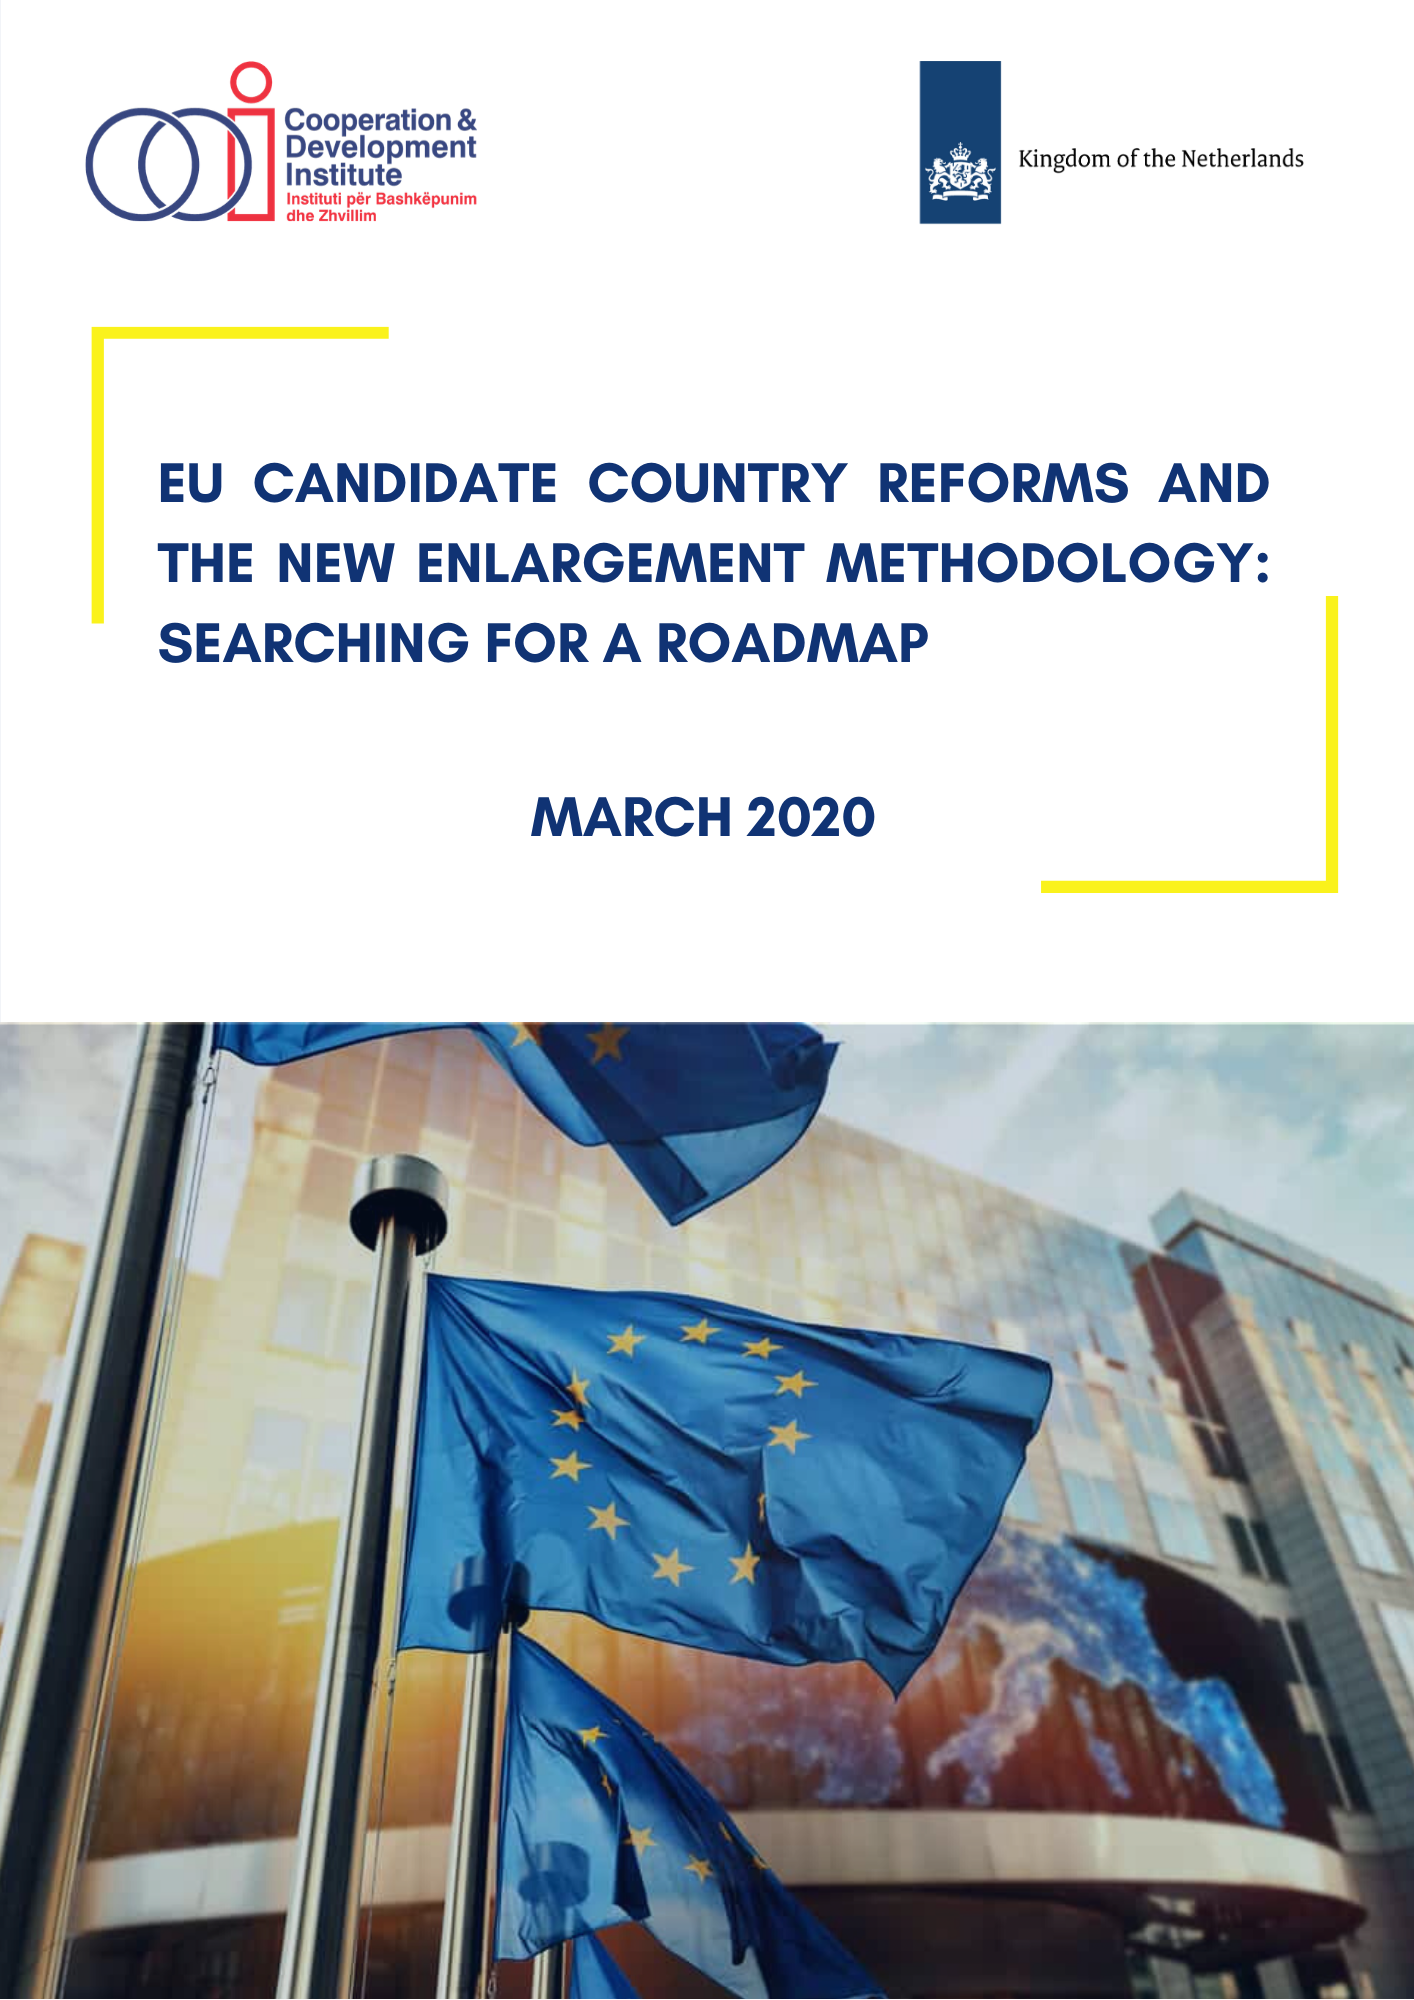 EU Candidate Country Reforms and the New Enlargement Methodology: Searching For a Roadmap